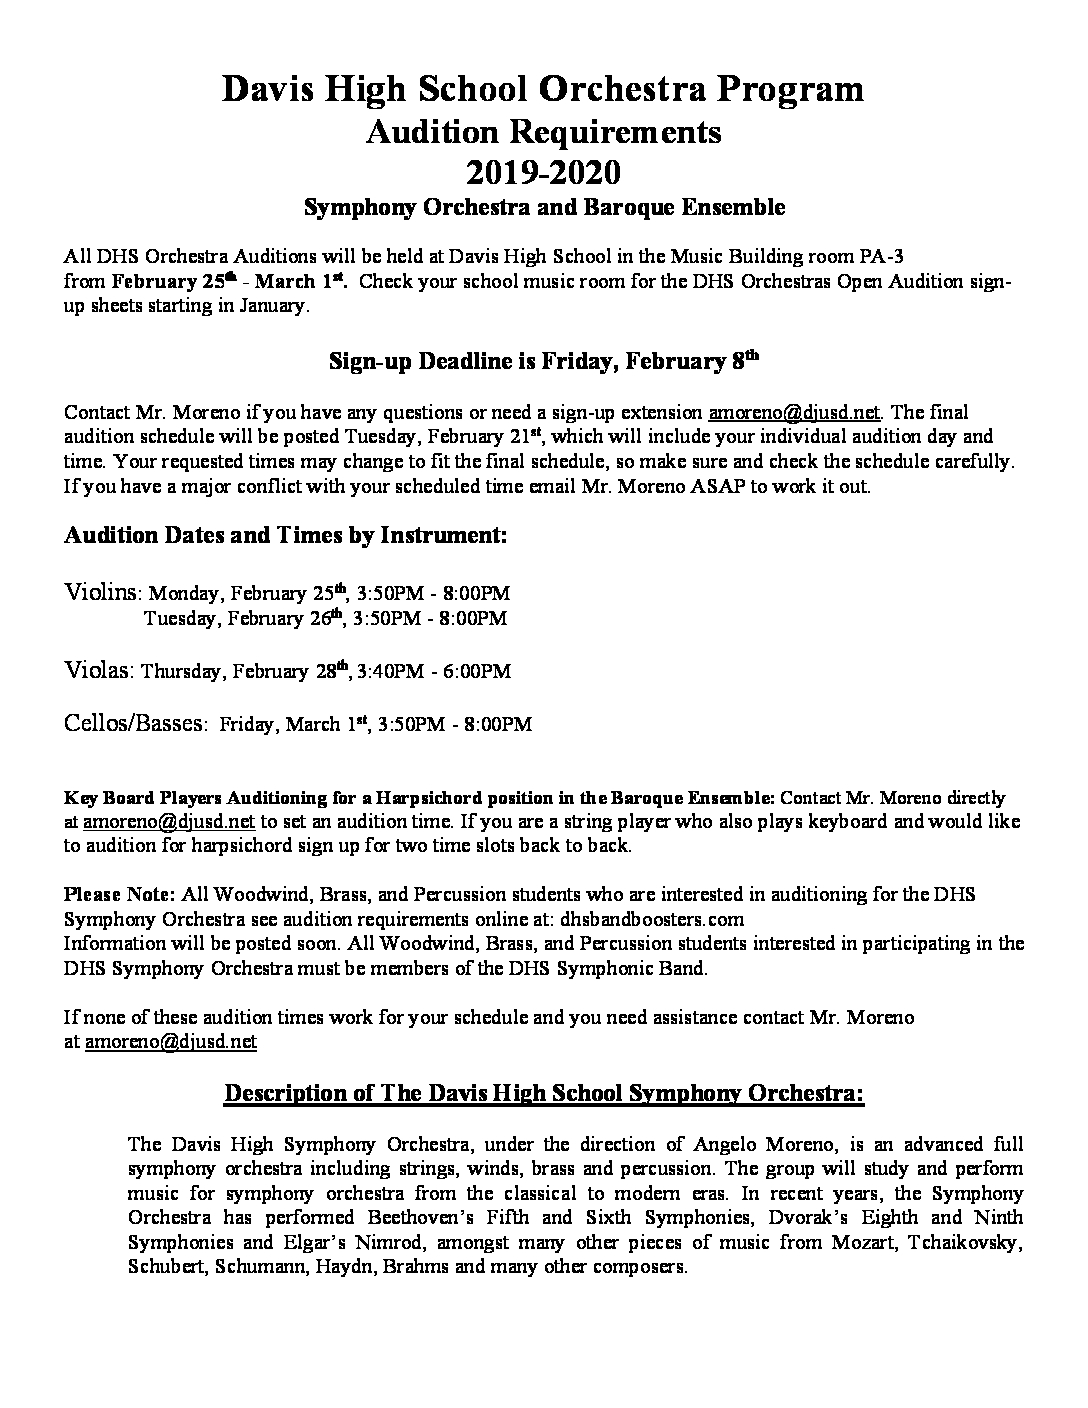 2019-20-dhs-orchestra-placement-audition-info – DHS-Holmes Orchestras